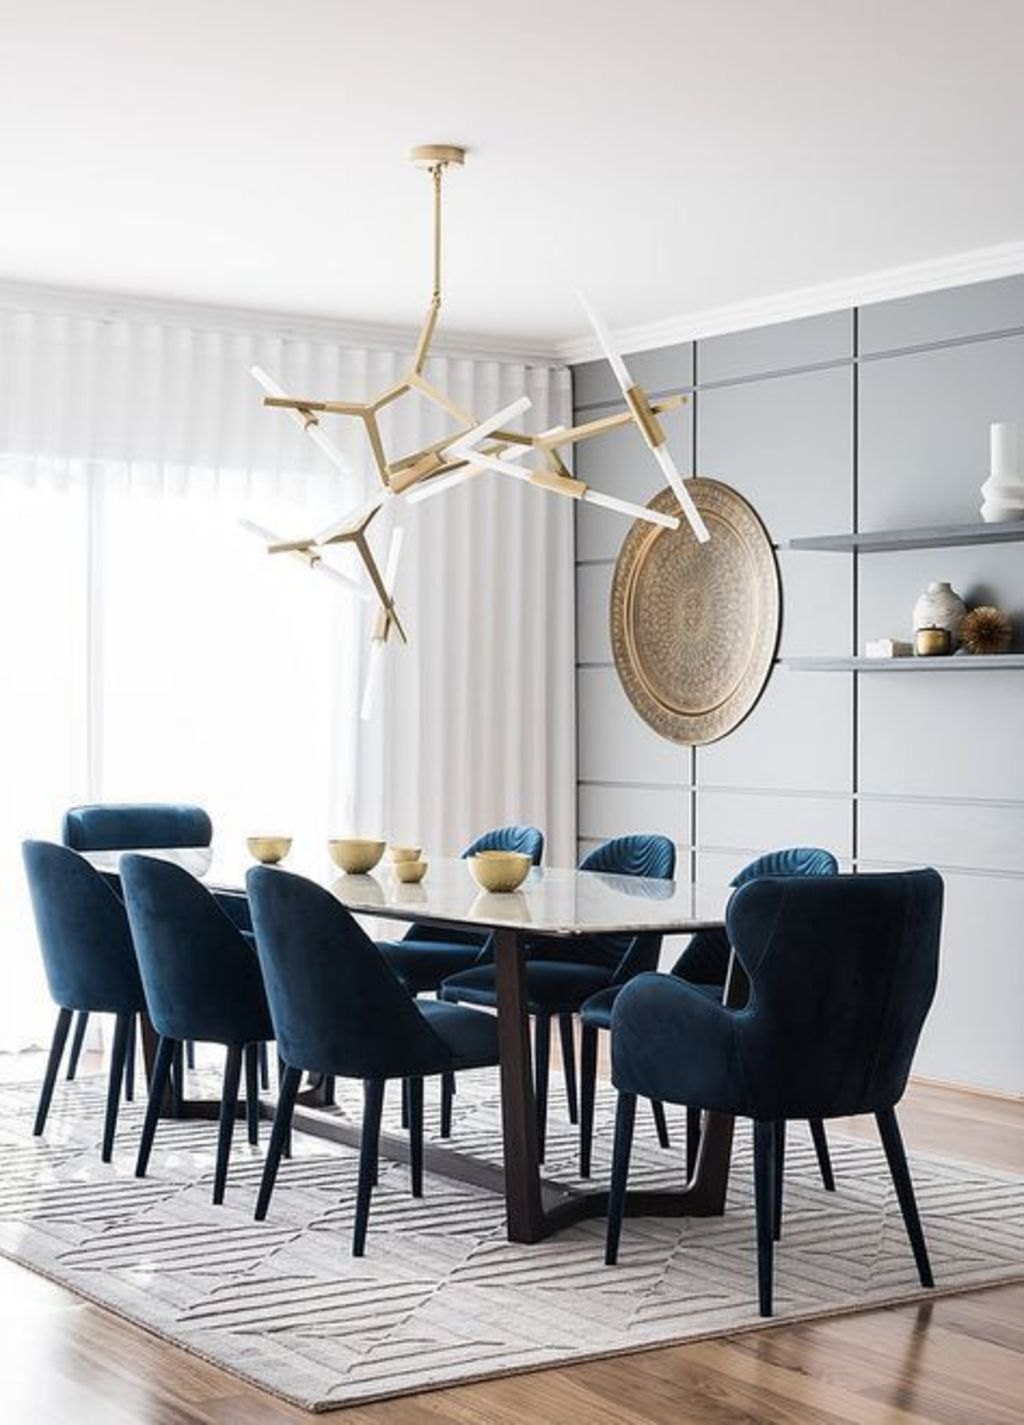 Trending Dining Chair Designs That Look So Simple But Also Elegant And Comfortable Part Stylish Dining Room Modern Dining Room Contemporary Dining Room Design